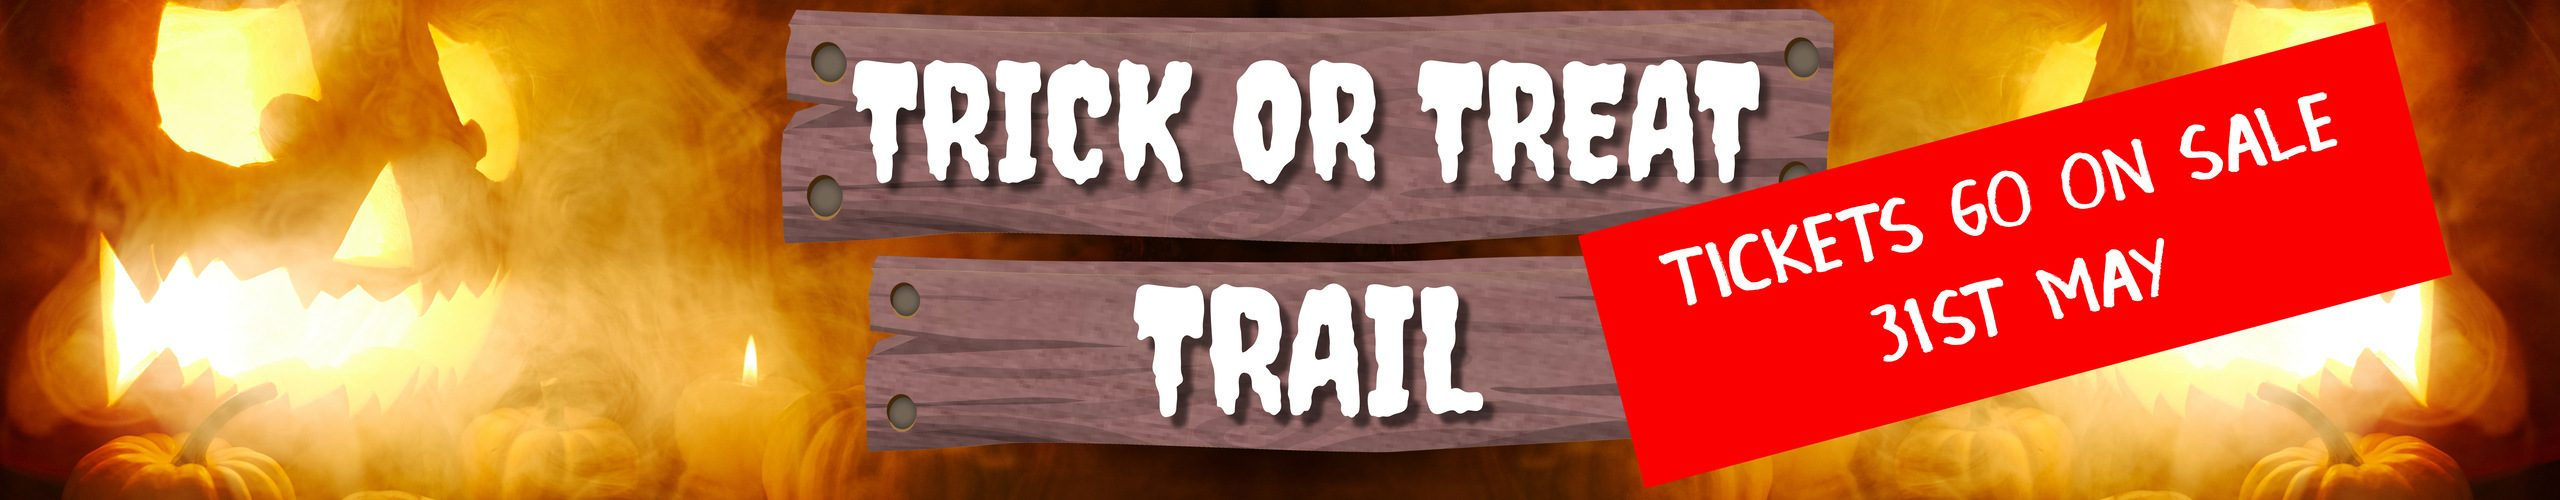 Trick or Treat Trail Banner Ticket Sale